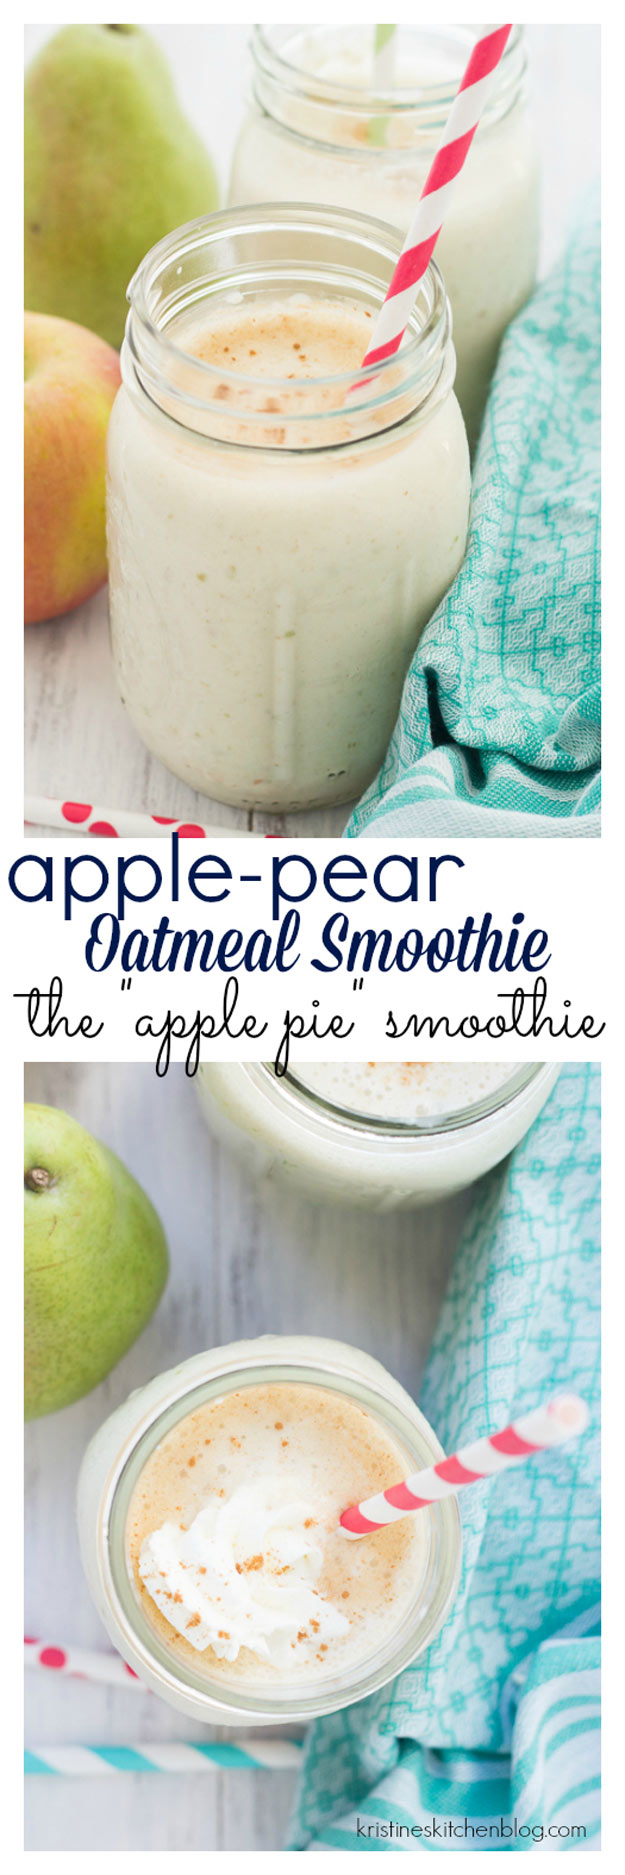 Healthy smoothie recipes and easy ideas perfect for breakfast, energy. Low calorie and high protein recipes for weightloss and to lose weight. Simple homemade recipe ideas that kids love. | Apple-Pear Oatmeal Smoothie AKA the Apple Pie Smoothie #smoothies #recipess